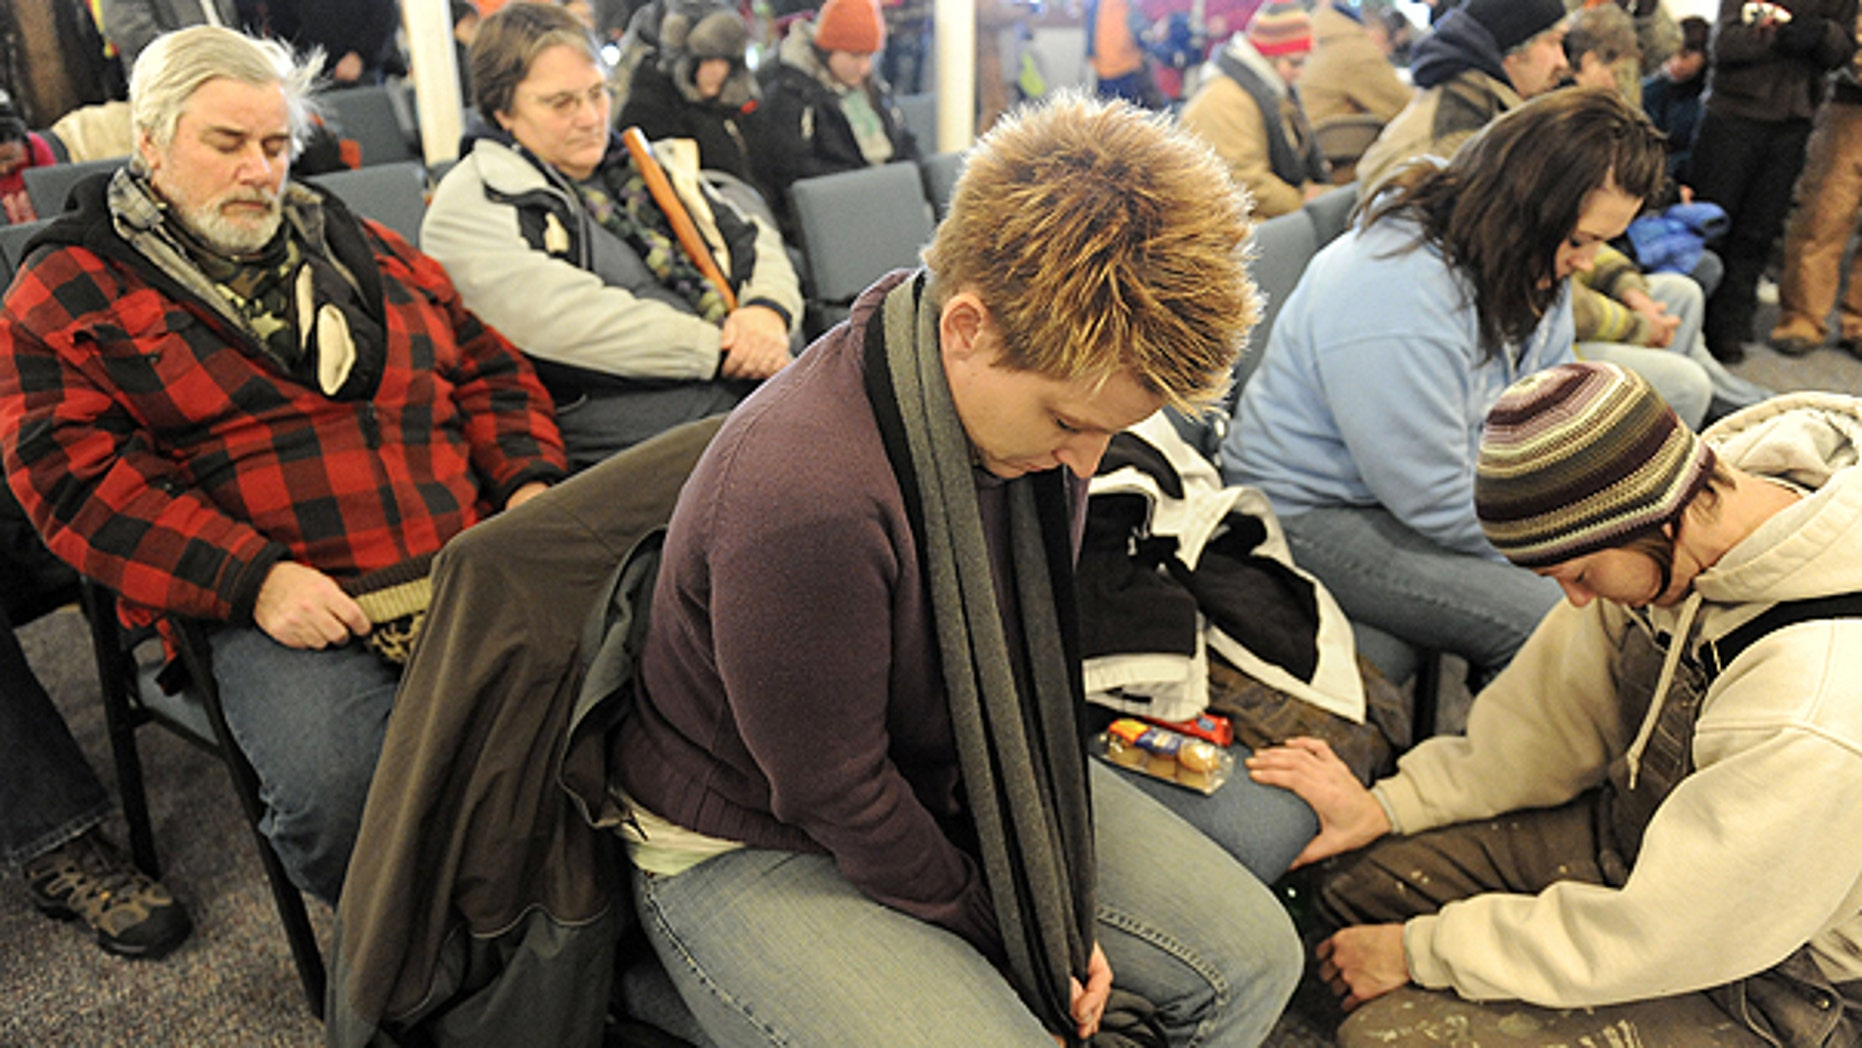 Dec. 2: Tina VanDerMade, center, from Sherwood, Ohio and Tracy Robertson, right, from Montpelier, Ohio, bow their heads in prayer at the Morenci Bible Fellowship Church, before going out with volunteers to continue the search for 9-year-old Andrew, 9, Alexander, 7 and Tanner Skelton, 5 in Morenci, Mich.